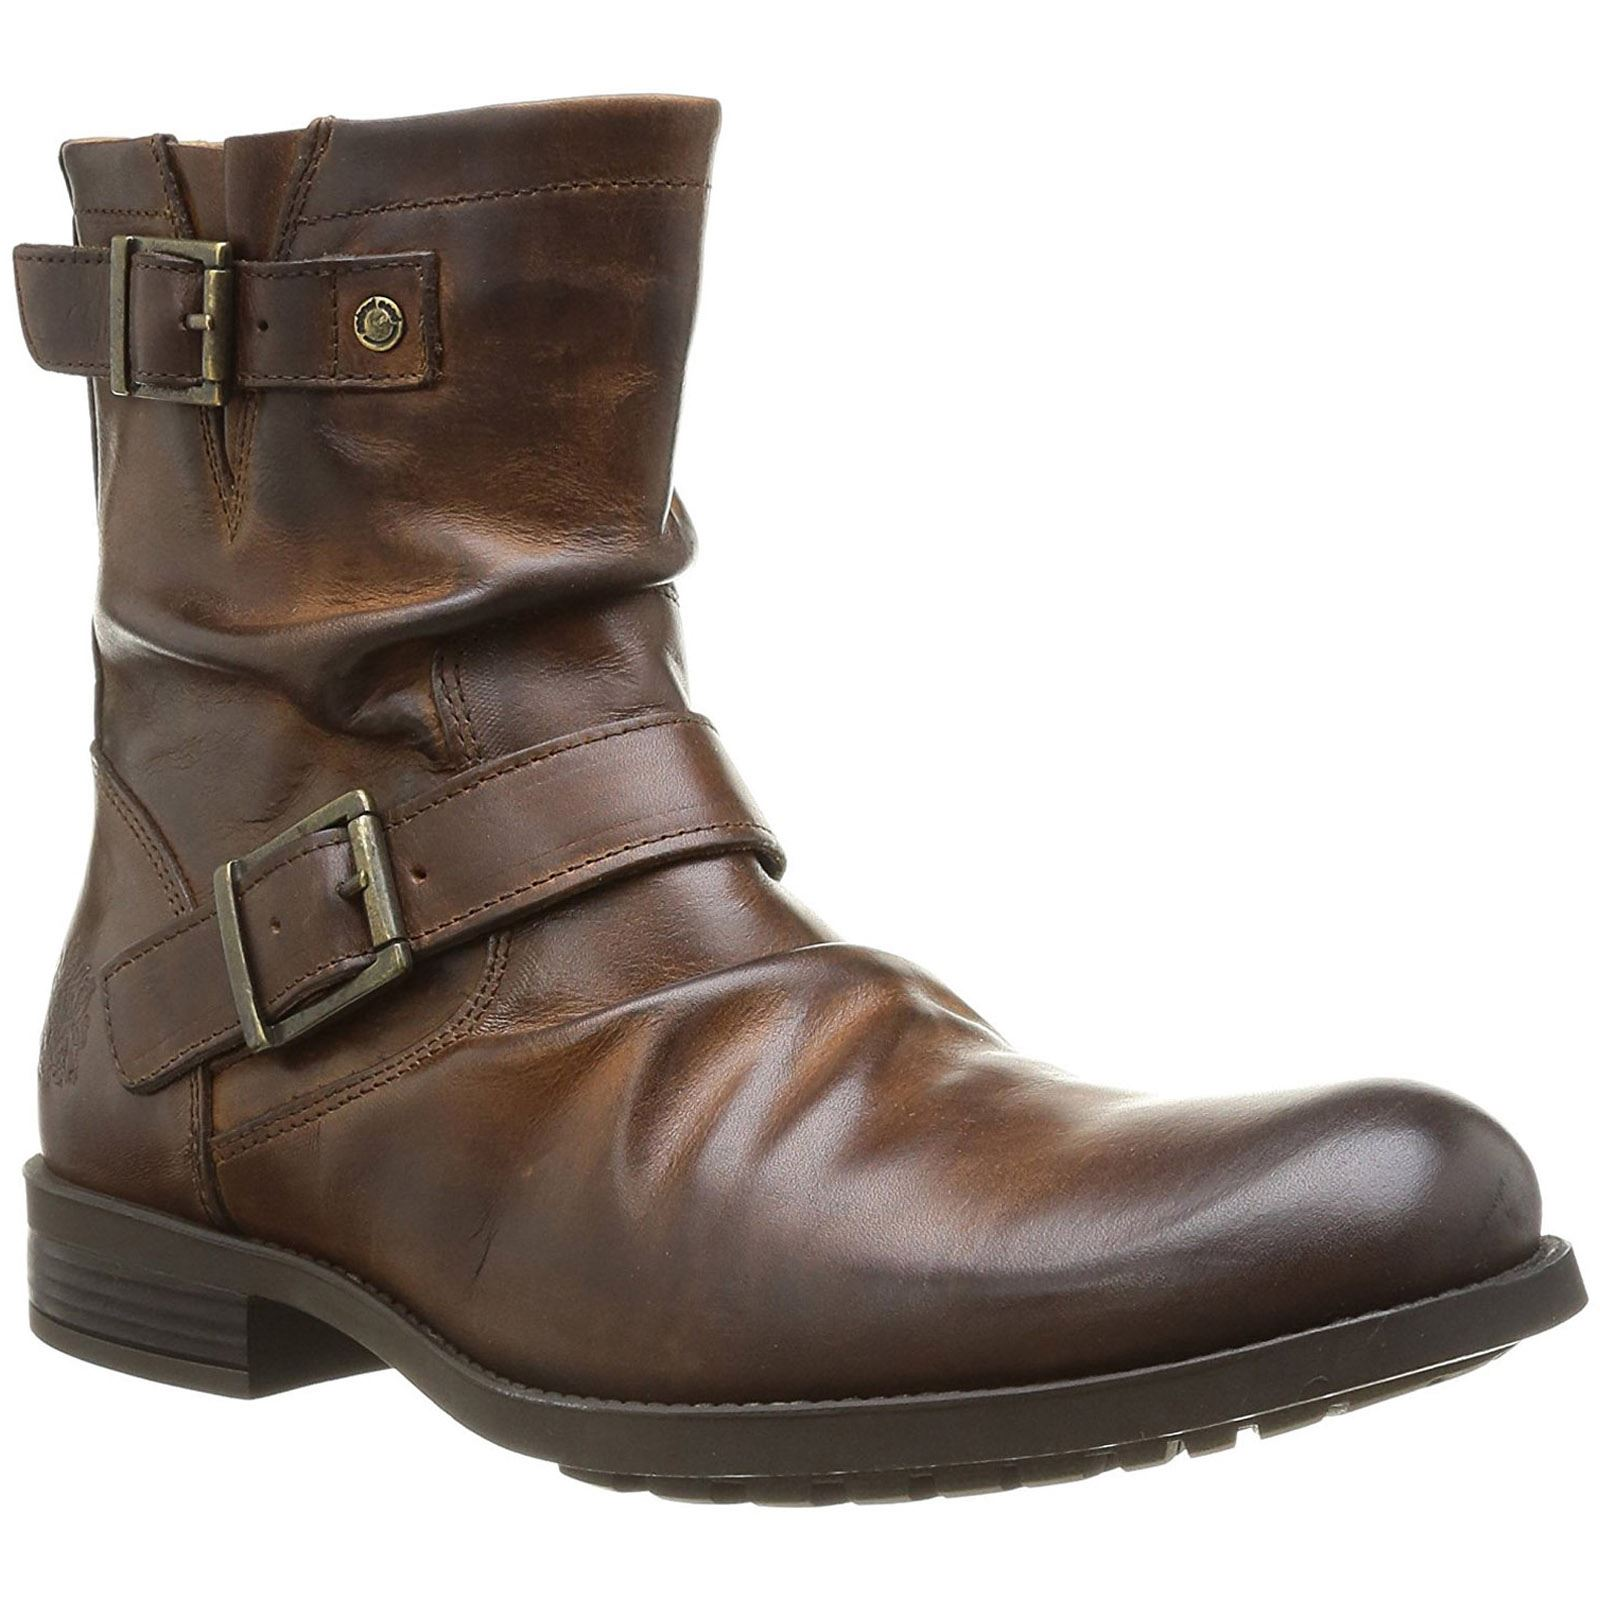 f03a5bcd4f547 Base London Metal Tan Mens Leather Creased Zip Biker Ankle Boots | eBay